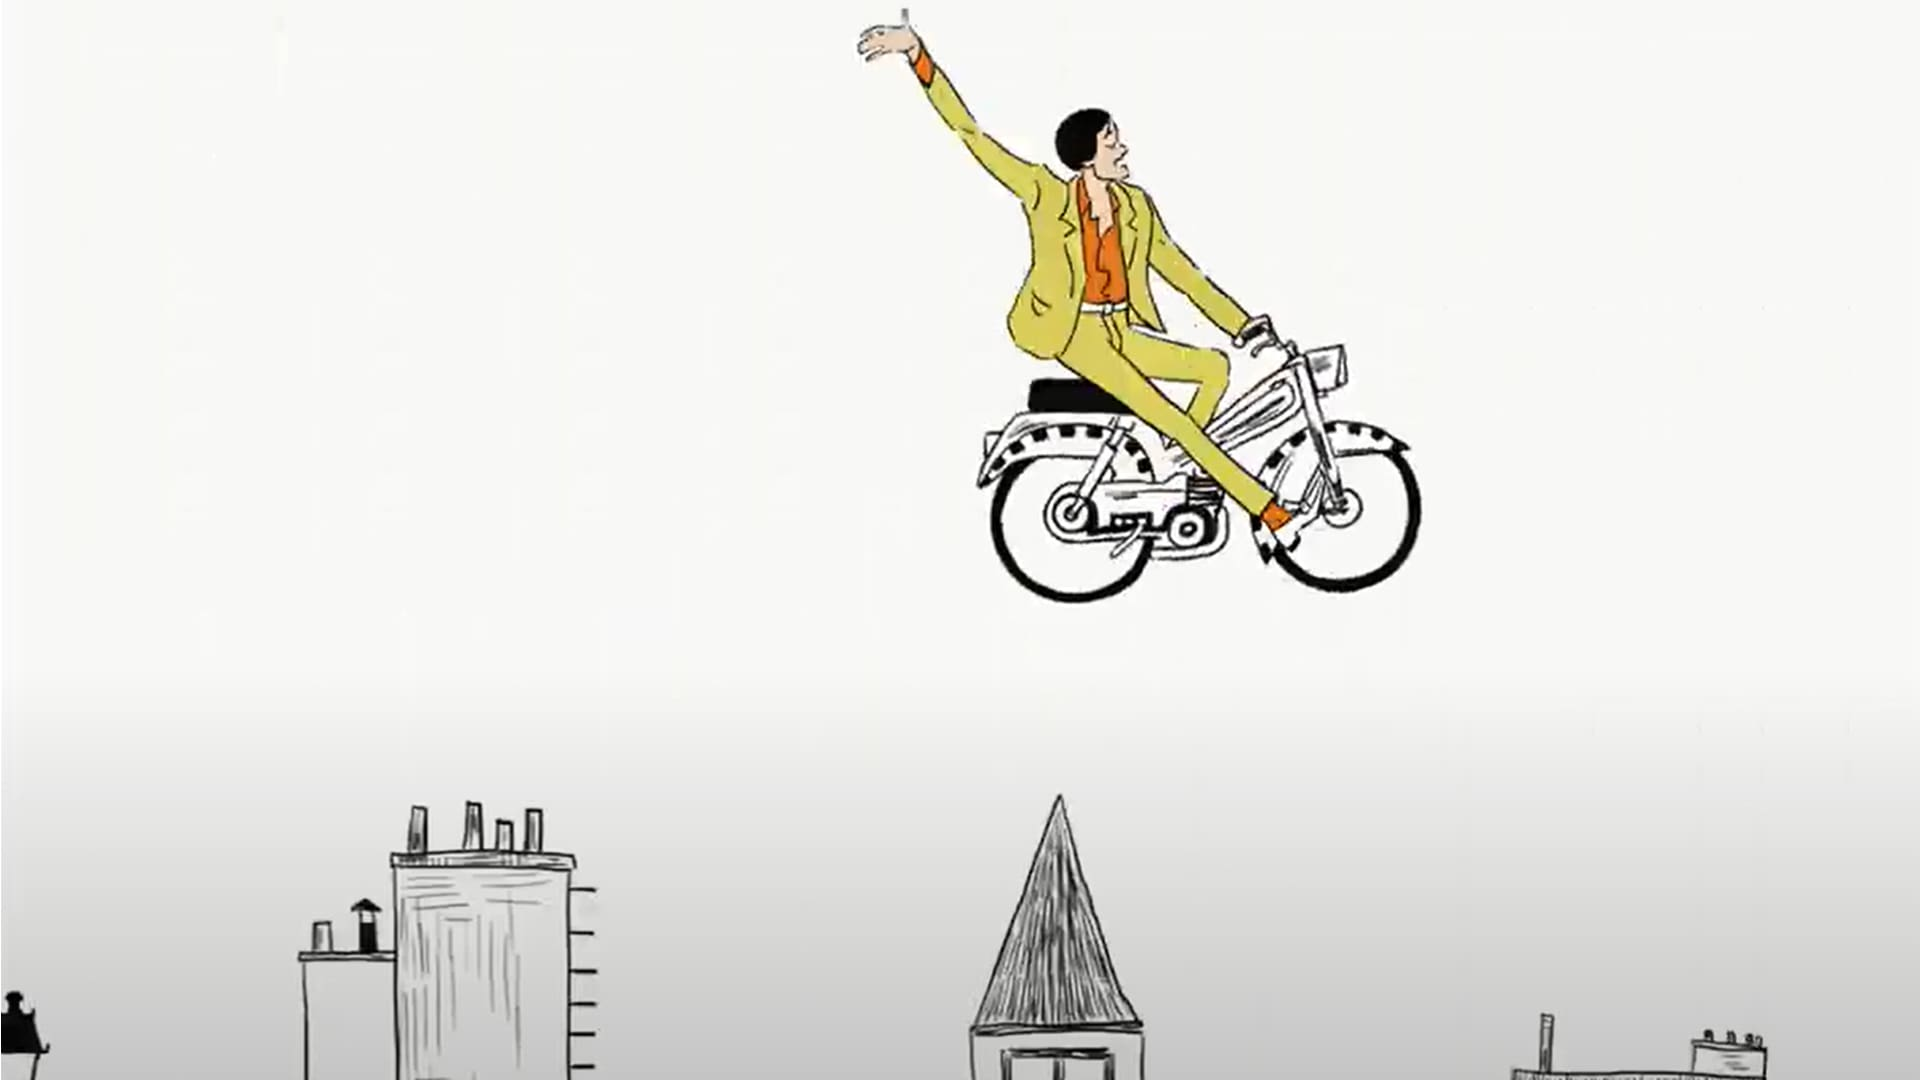 An illustrated Jarvis Cocker rides a bike in the sky for the music video Aline from the soundtrack of The French Dispatch